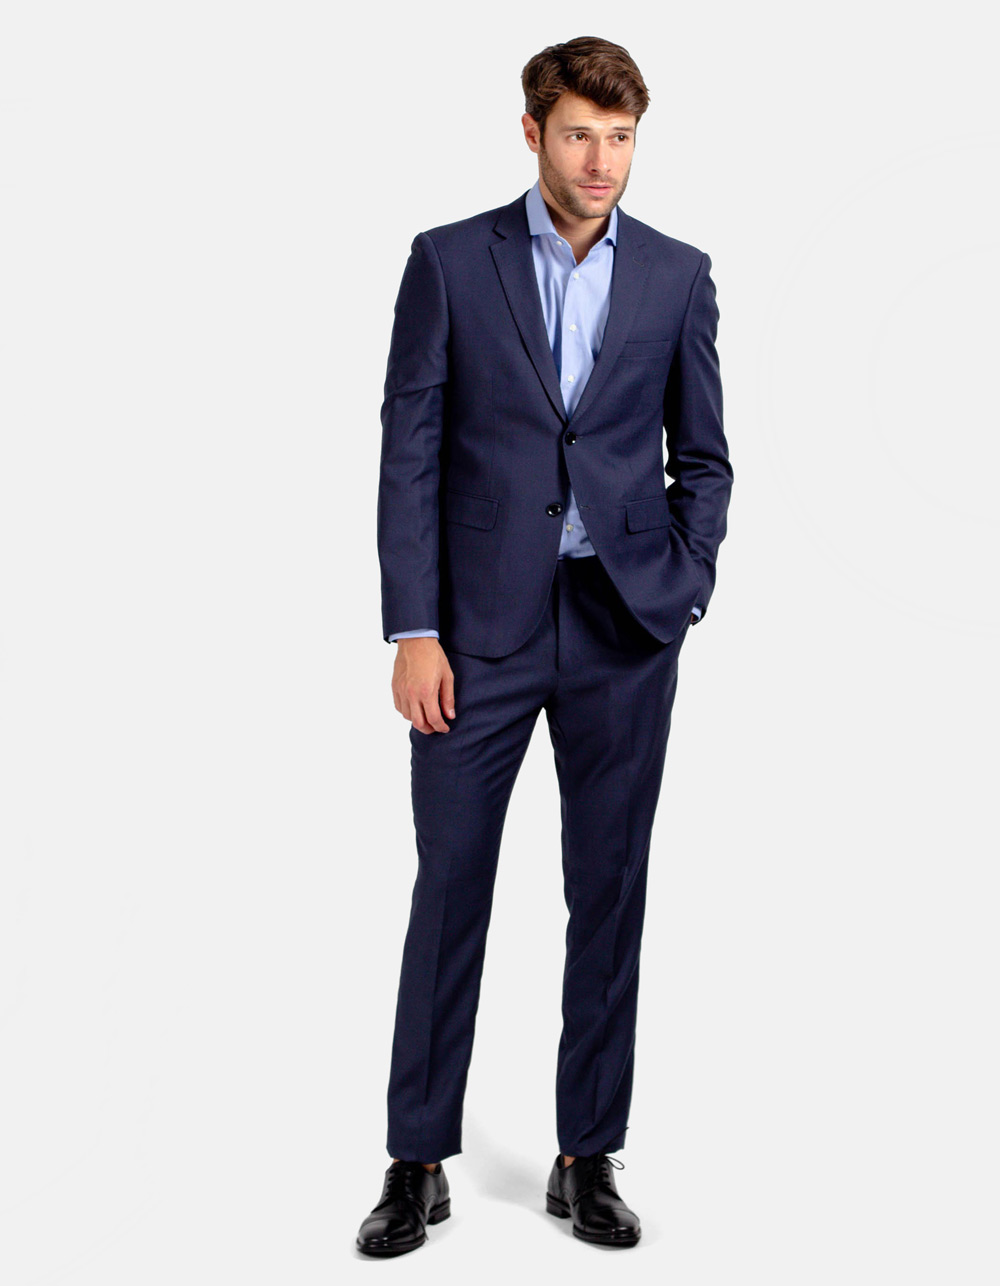 Navy blue plain suit